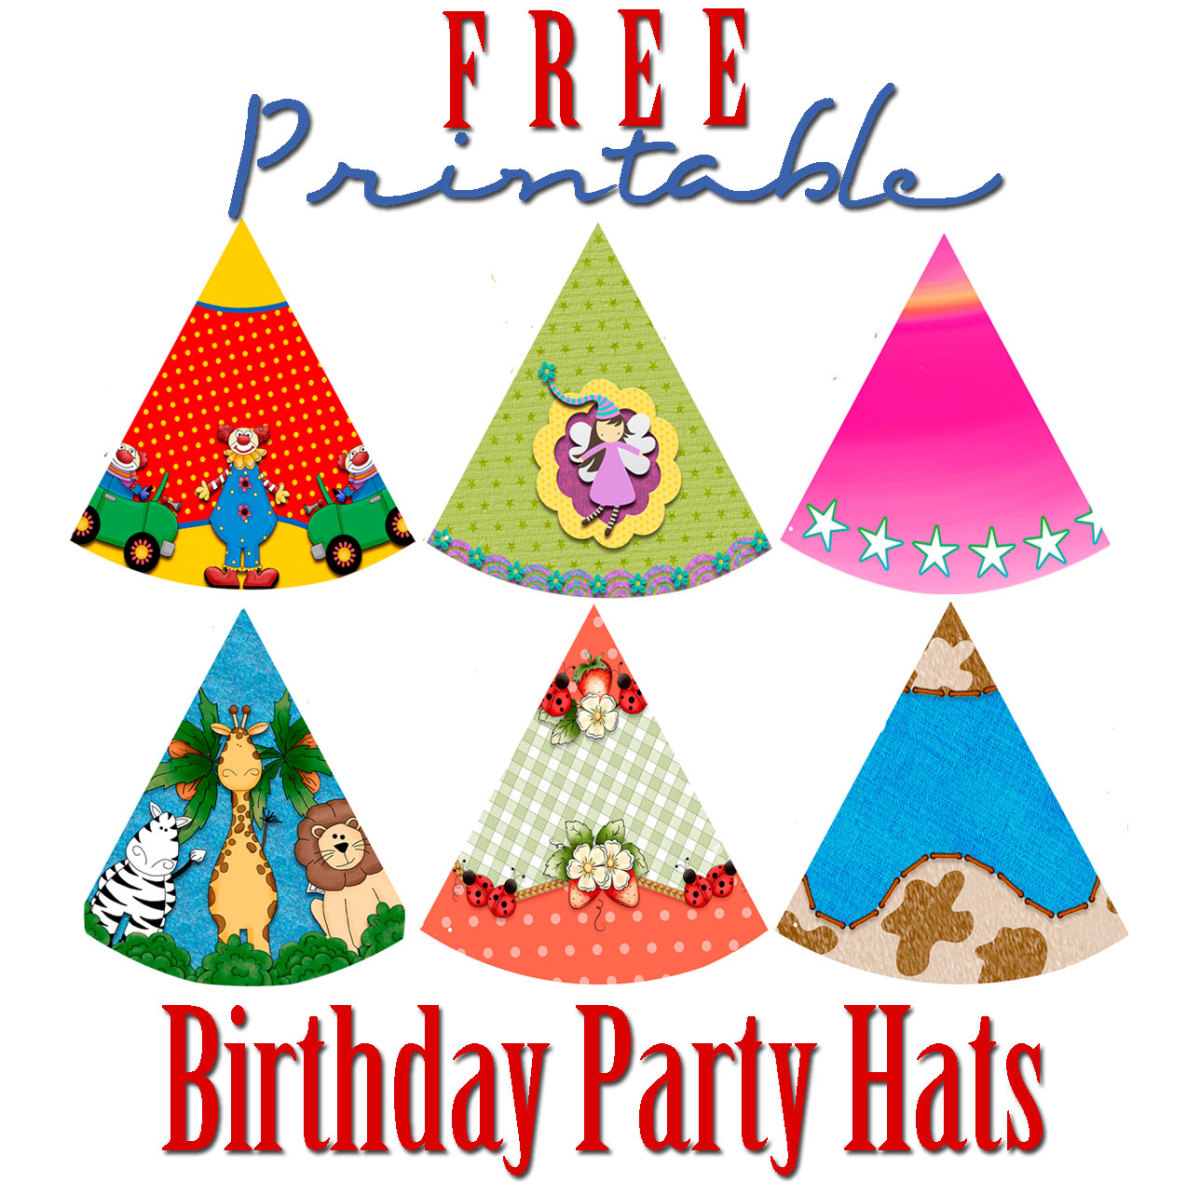 It's just a picture of Unusual Party Hat Templates Printable